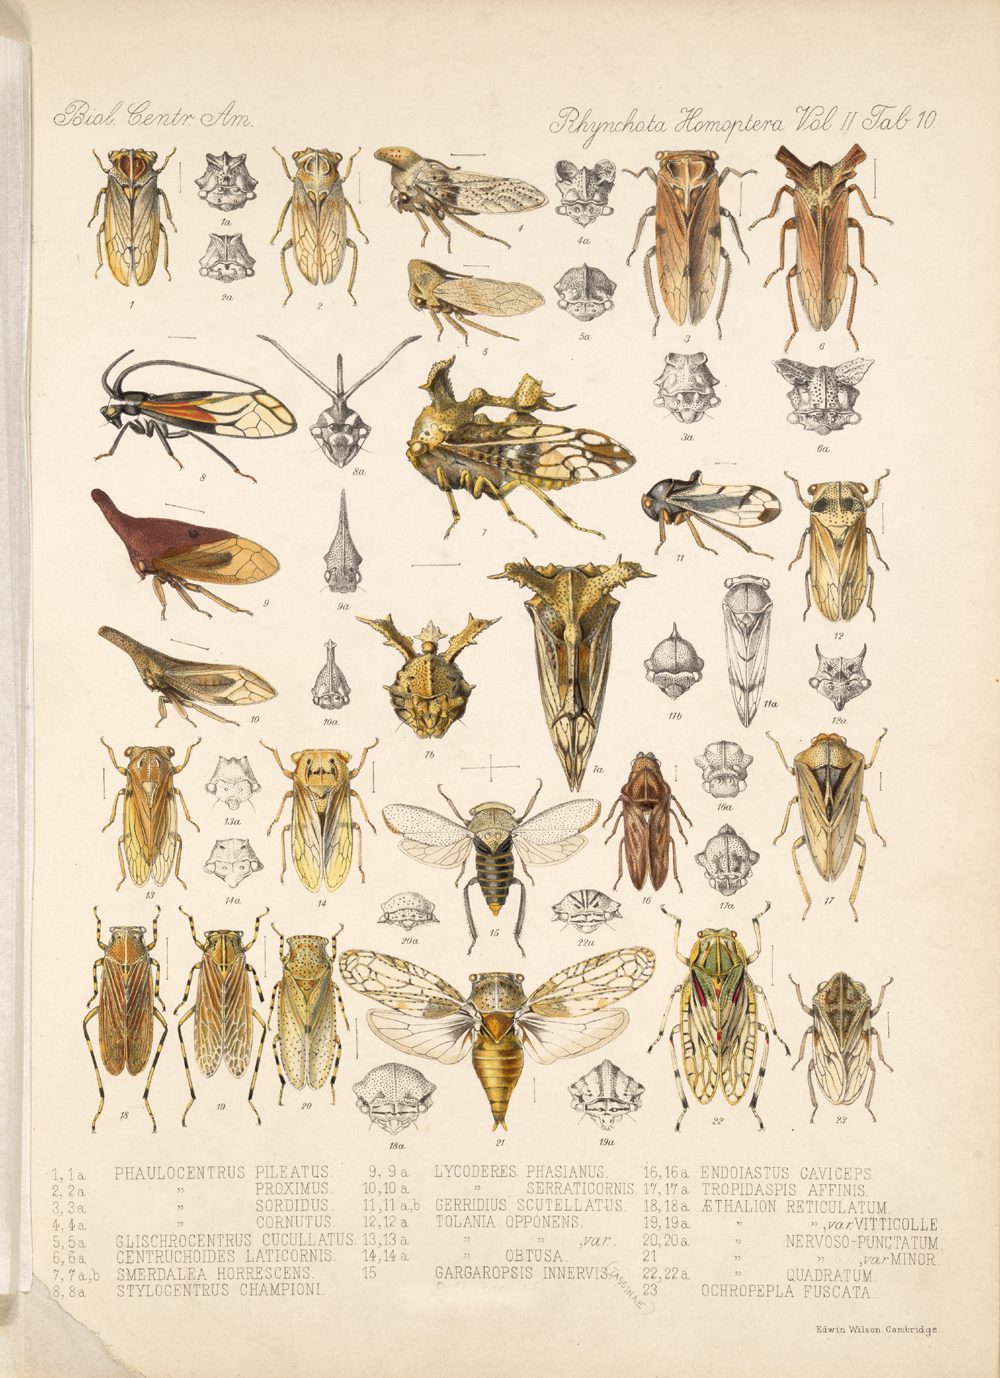 Other Insects,  Image number:bca_18_02_01_368